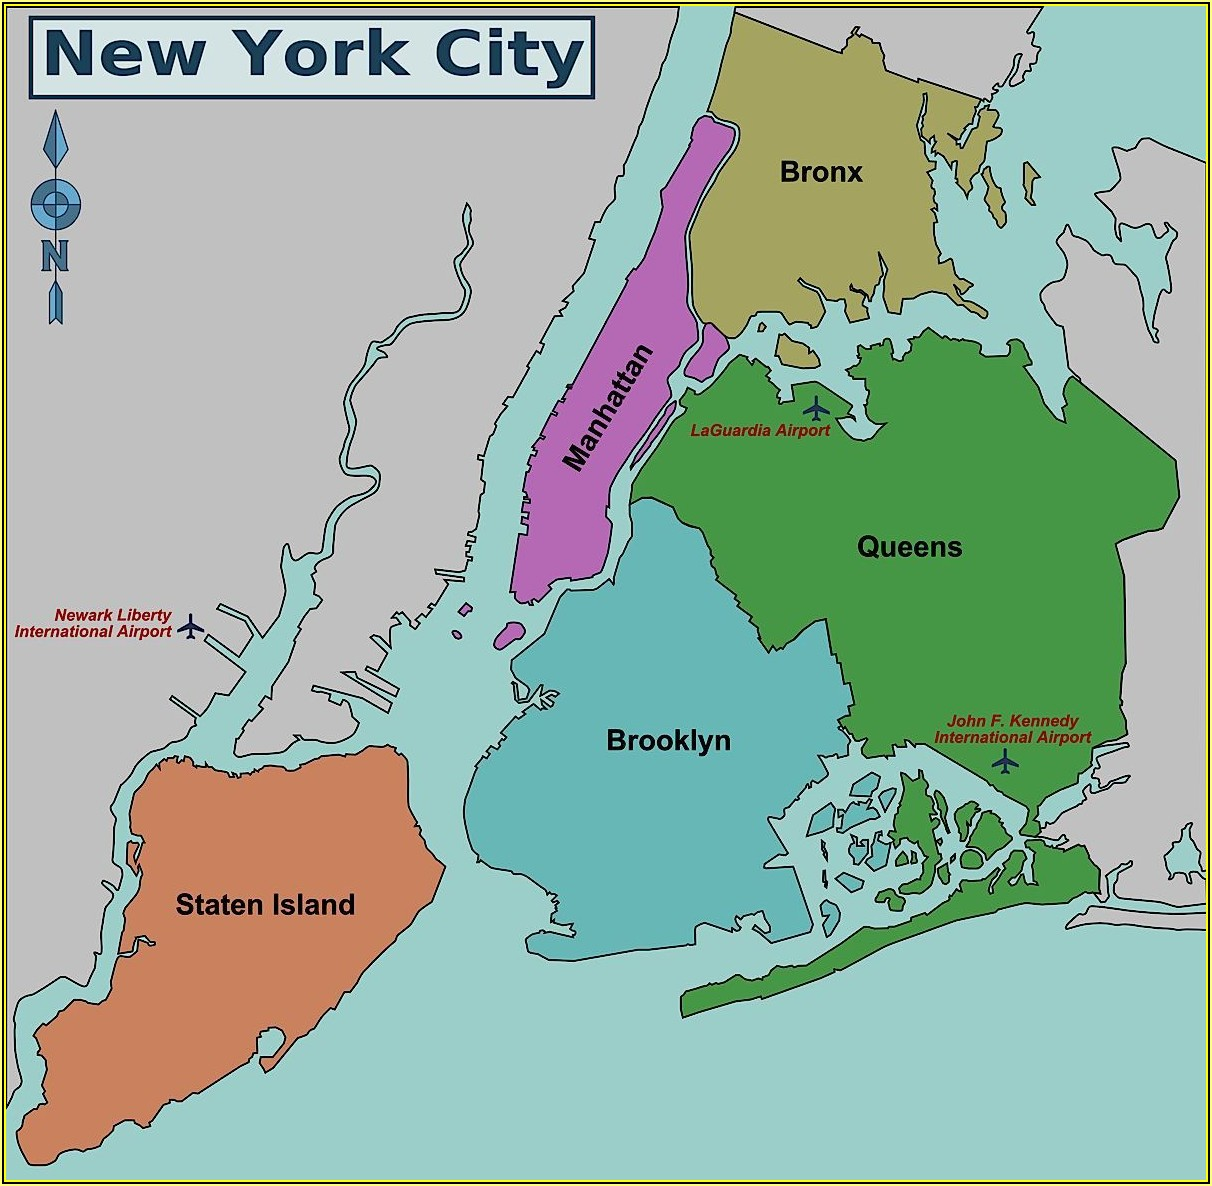 Map Of New York City 5 Boroughs